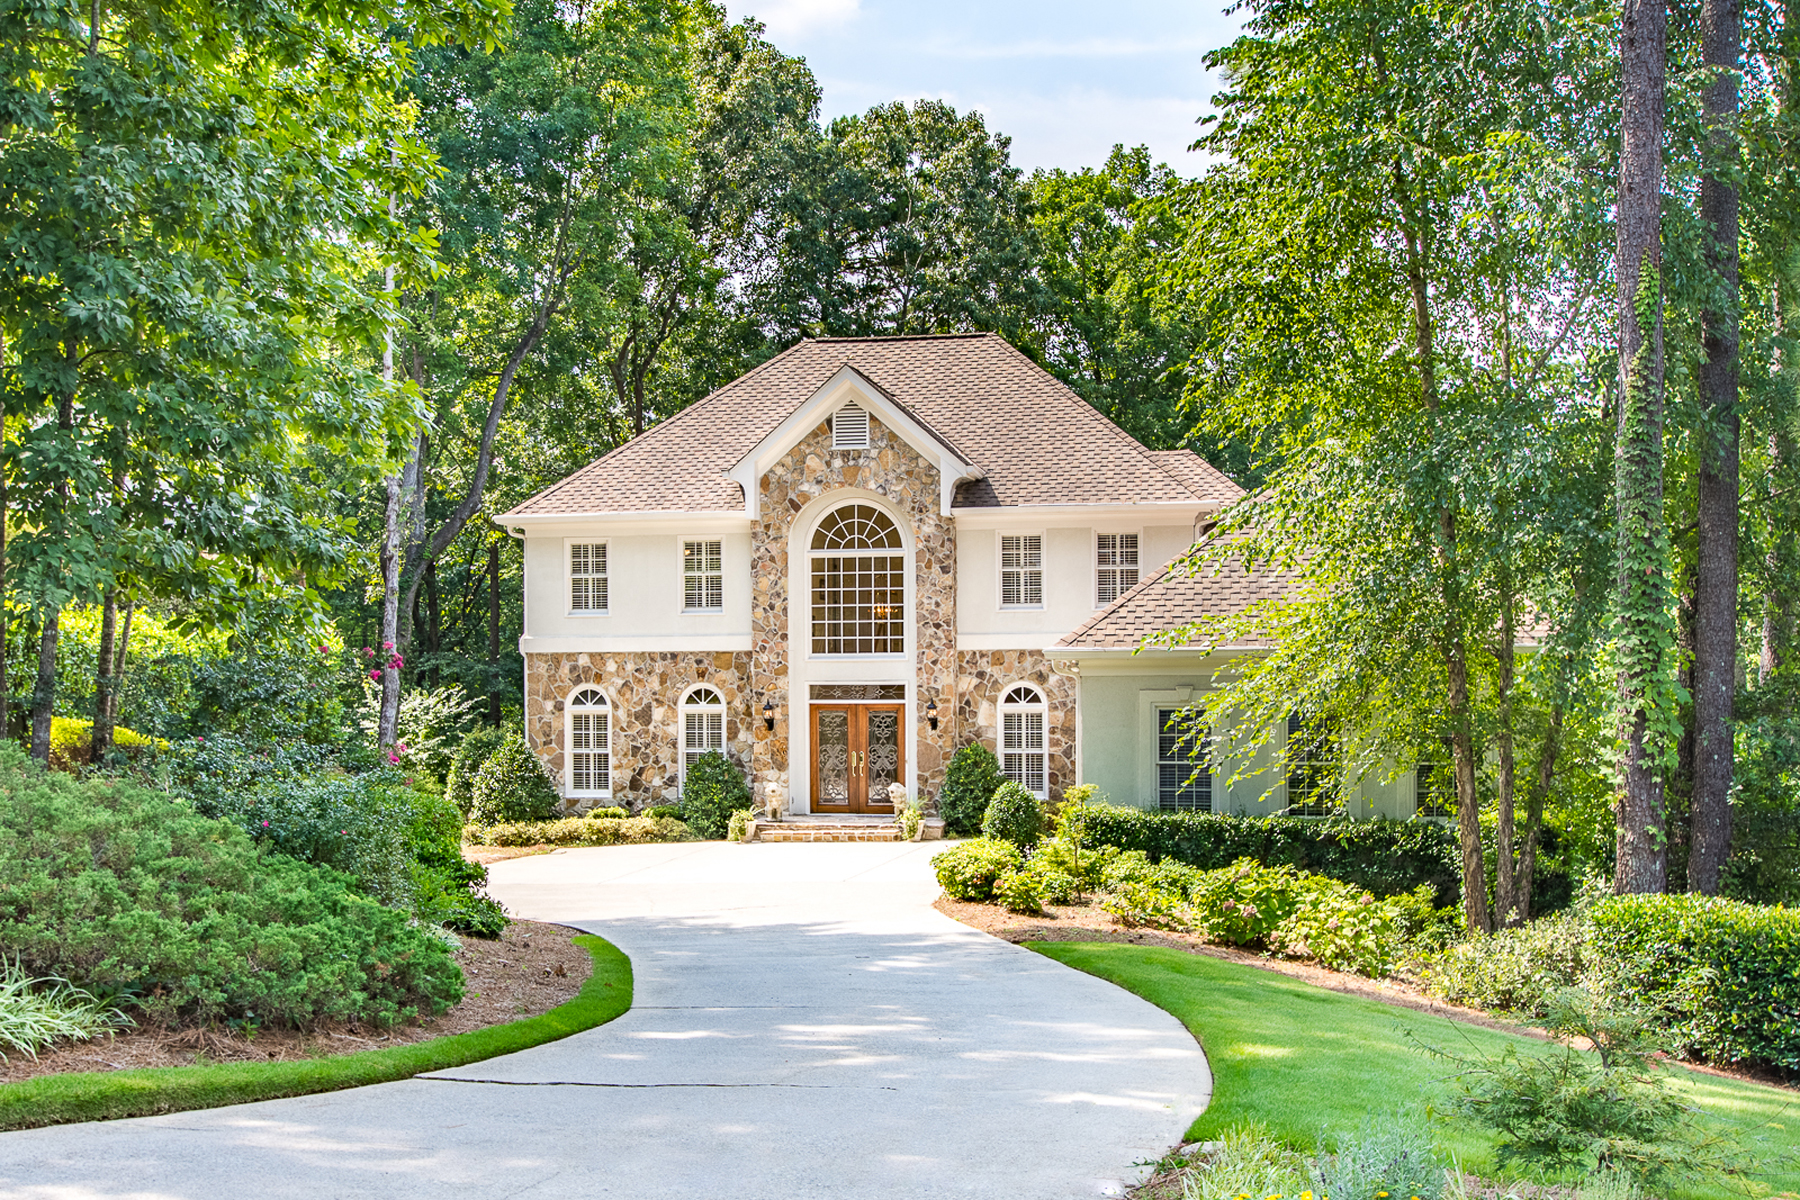 Property のために 売買 アット Gorgeous Home On Cul De Sac Lot Overlooking Lake In Country Club Of The South 1060 Matheson Way, Johns Creek, ジョージア 30022 アメリカ